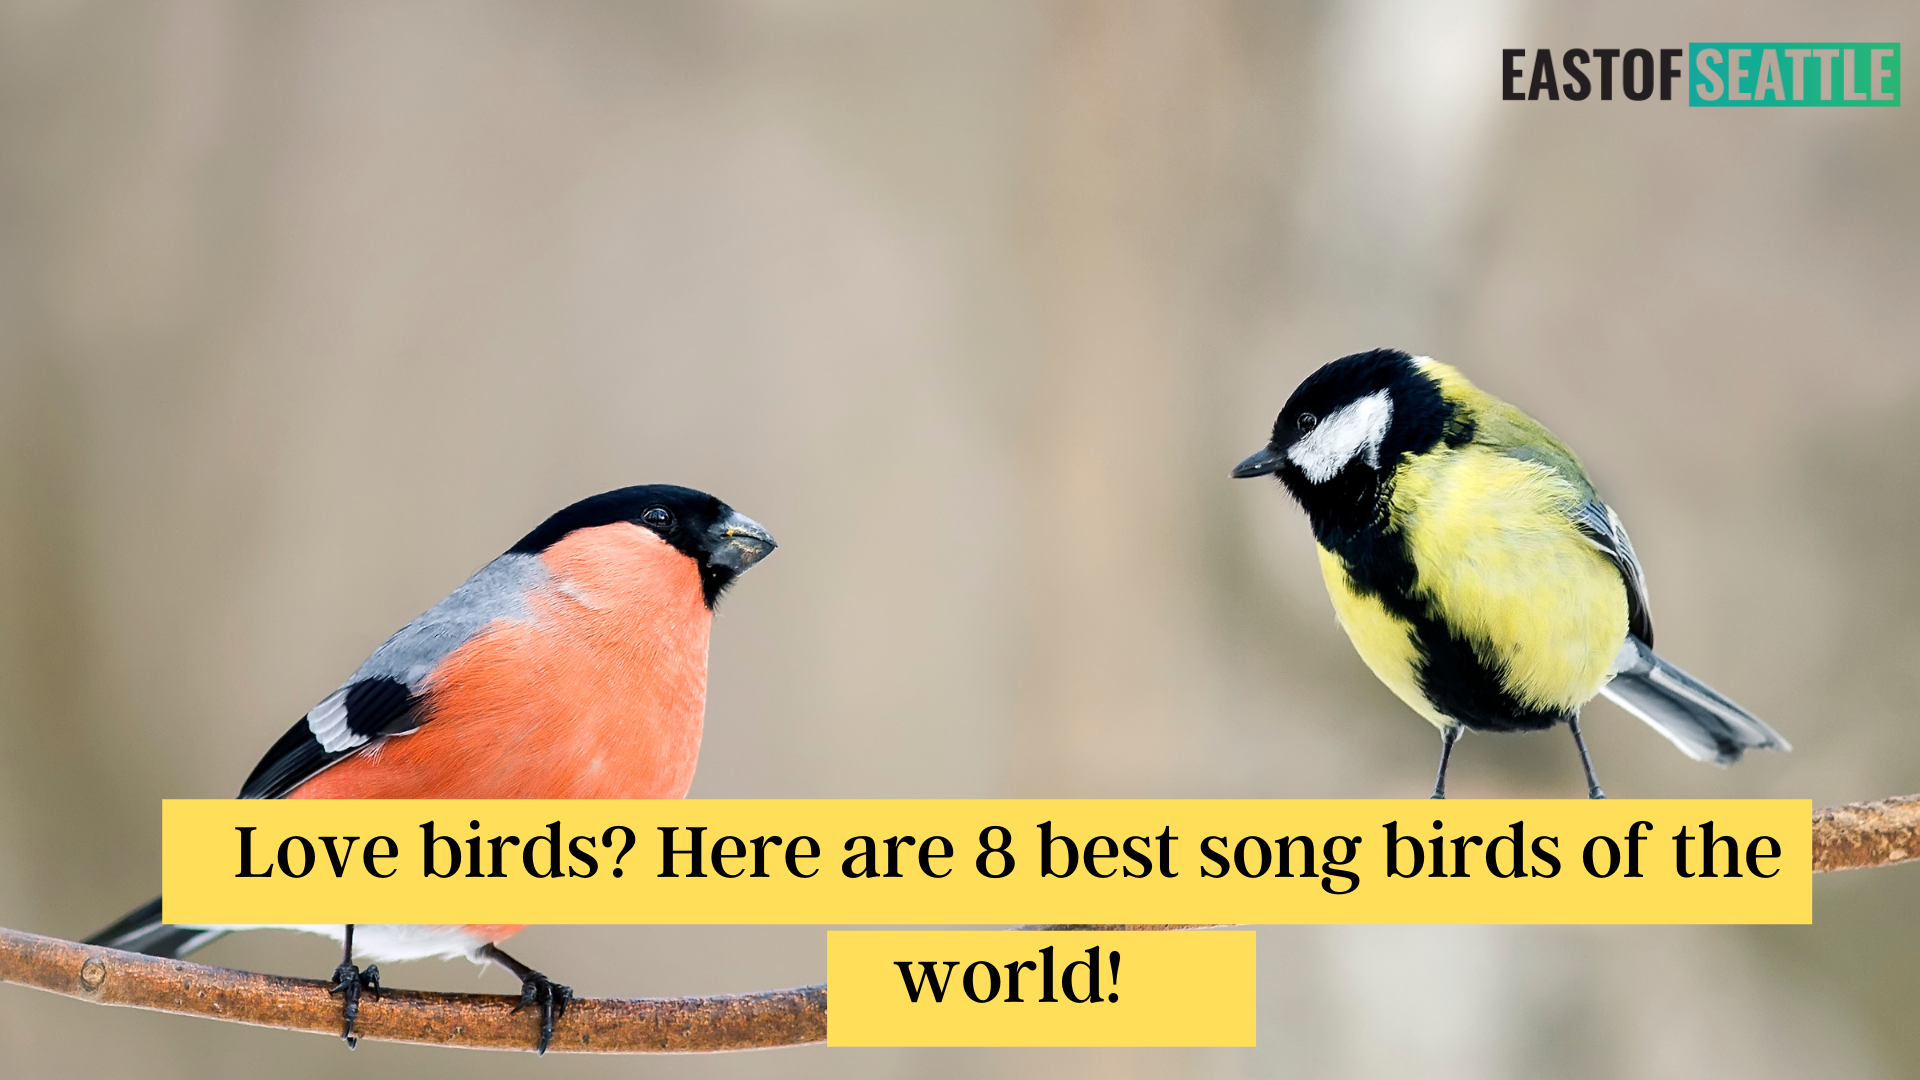 Love birds? Here are 8 best song birds of the world!